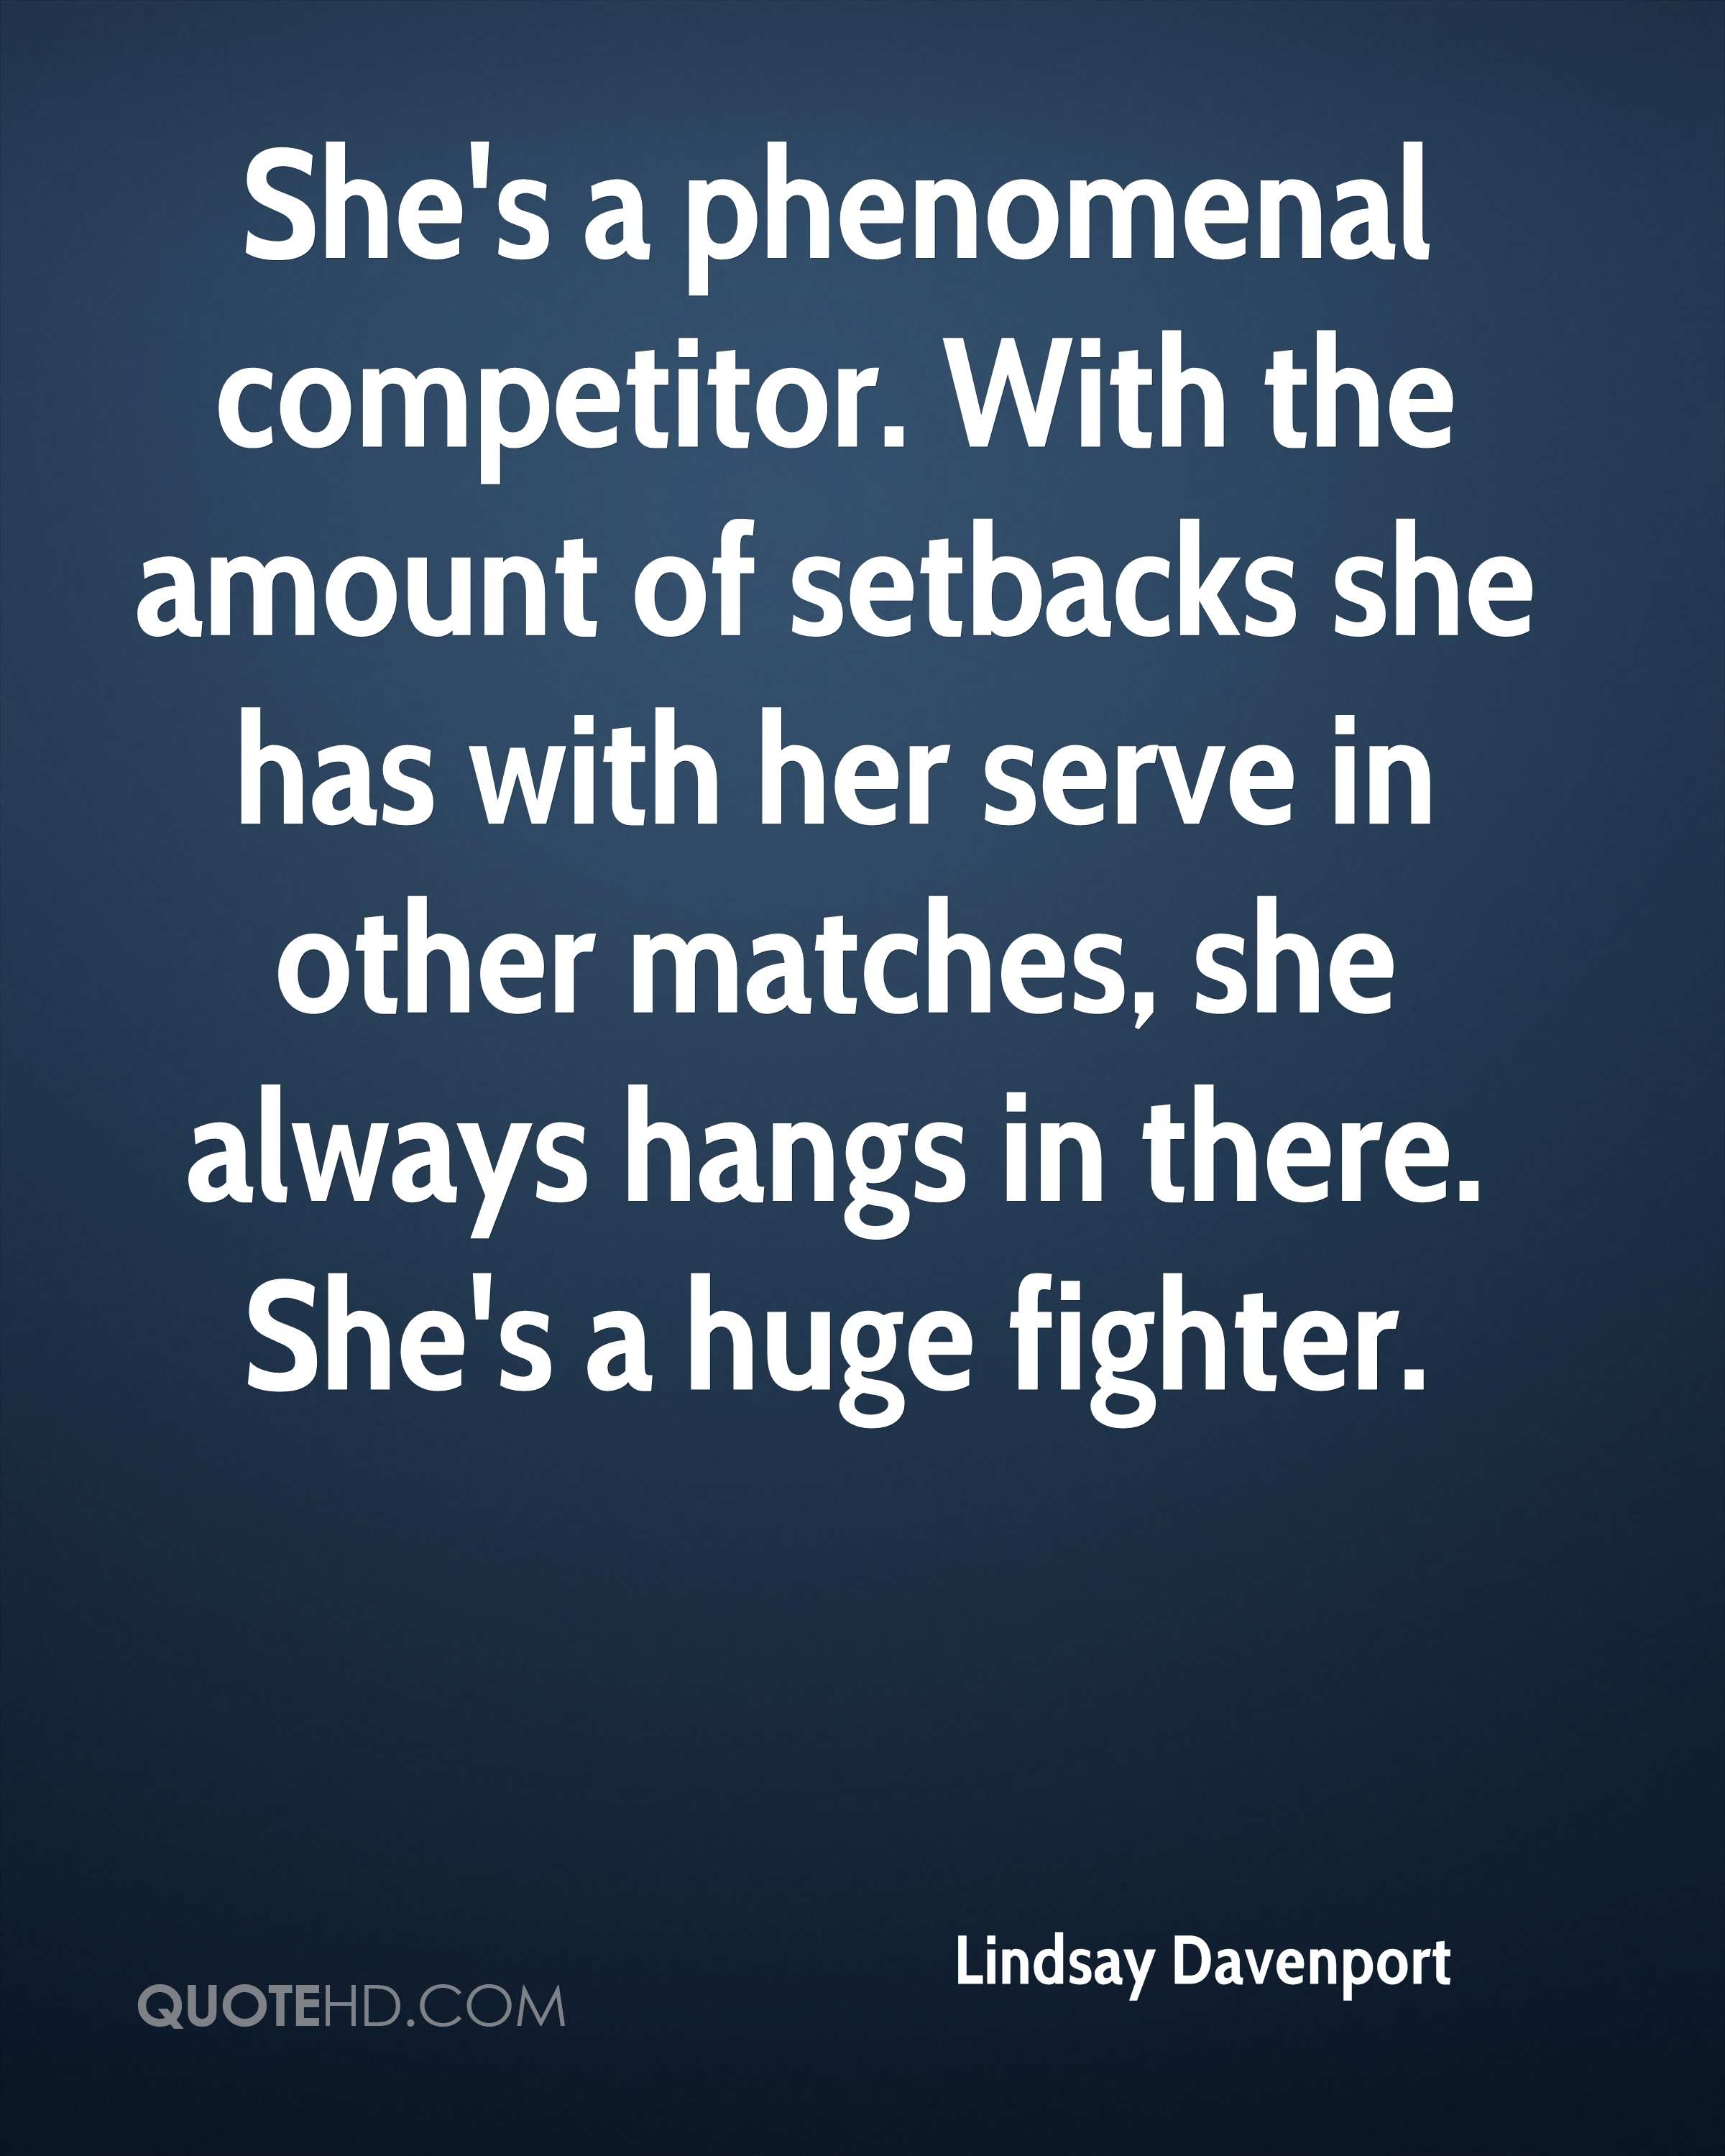 Bitchy Quotes Top 59 Most Inspiring Lindsay Davenport Quotesquotesurf